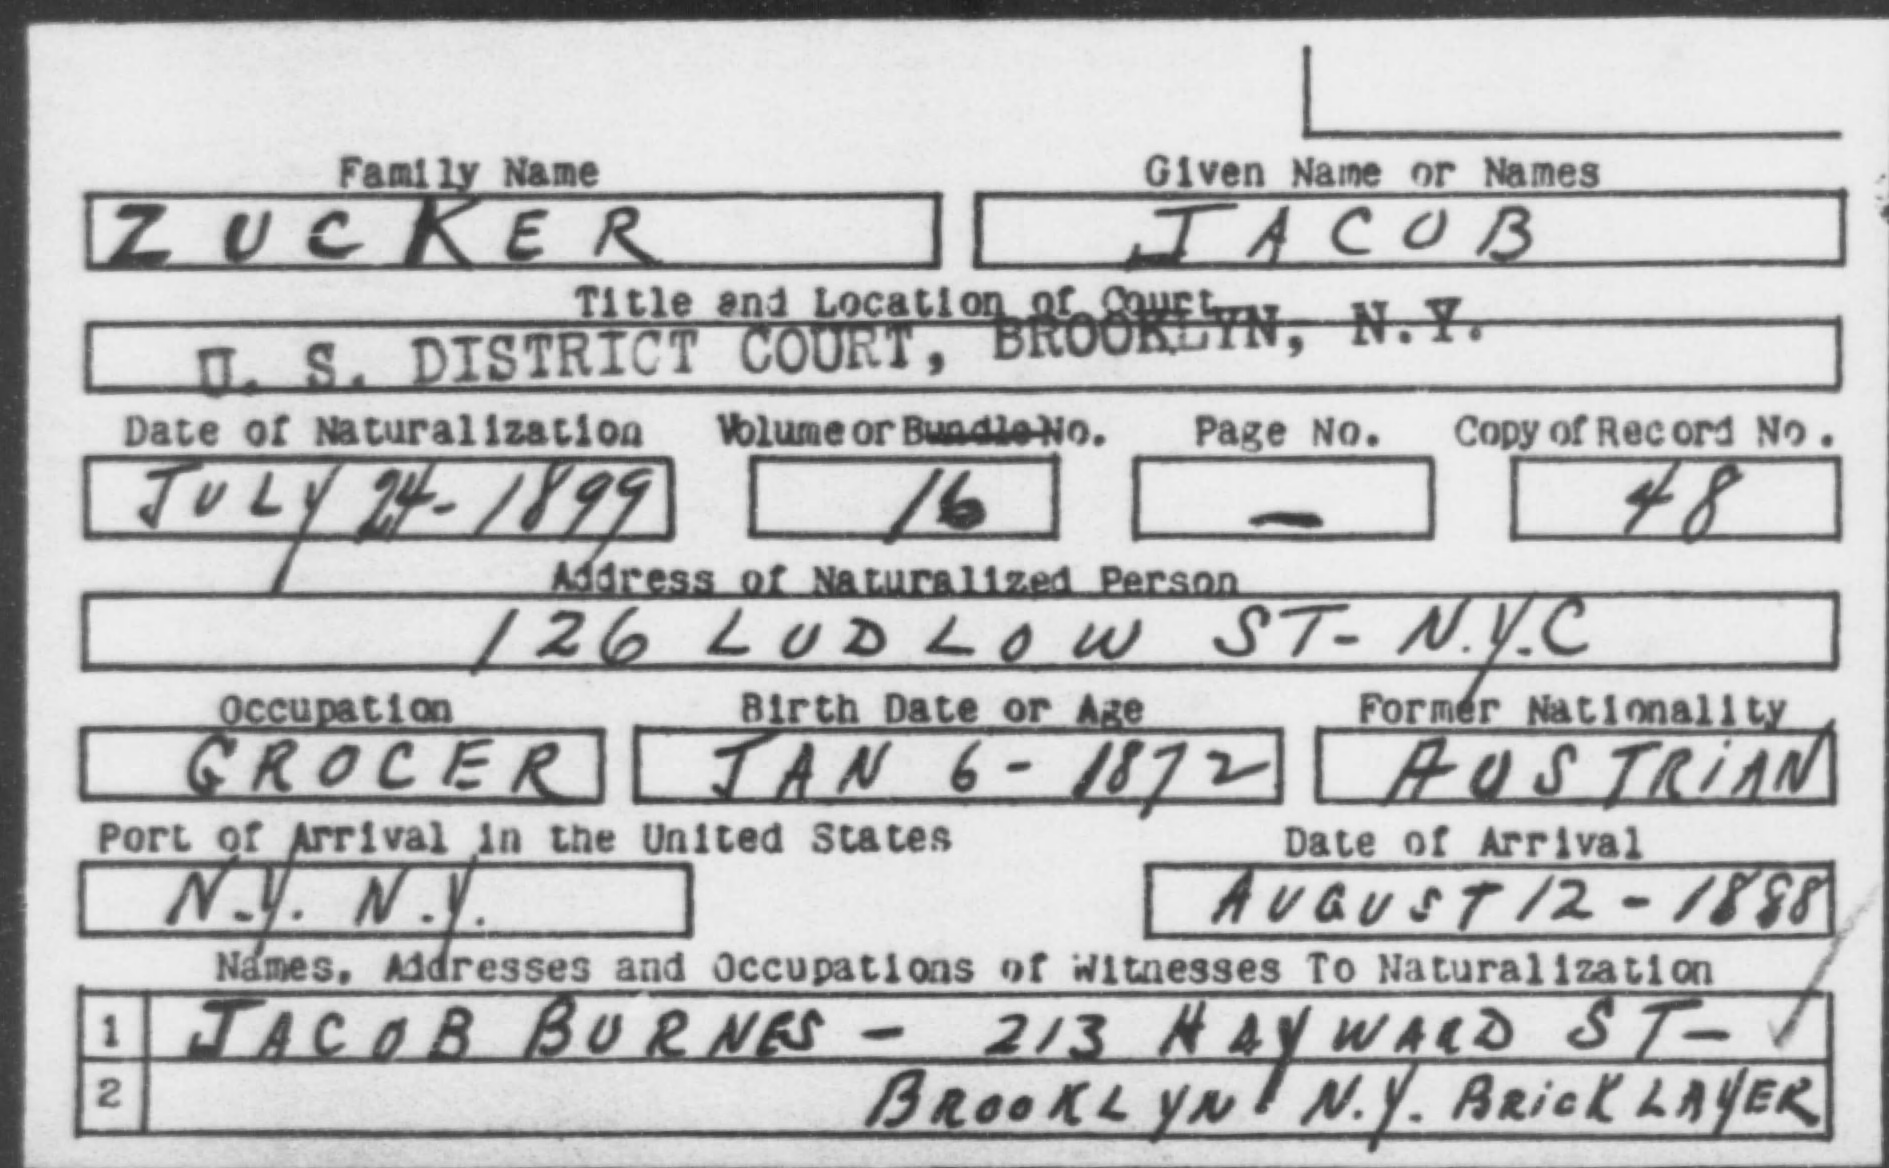 ZUCKER, JACOB - Born: 1872, Naturalized: 1899